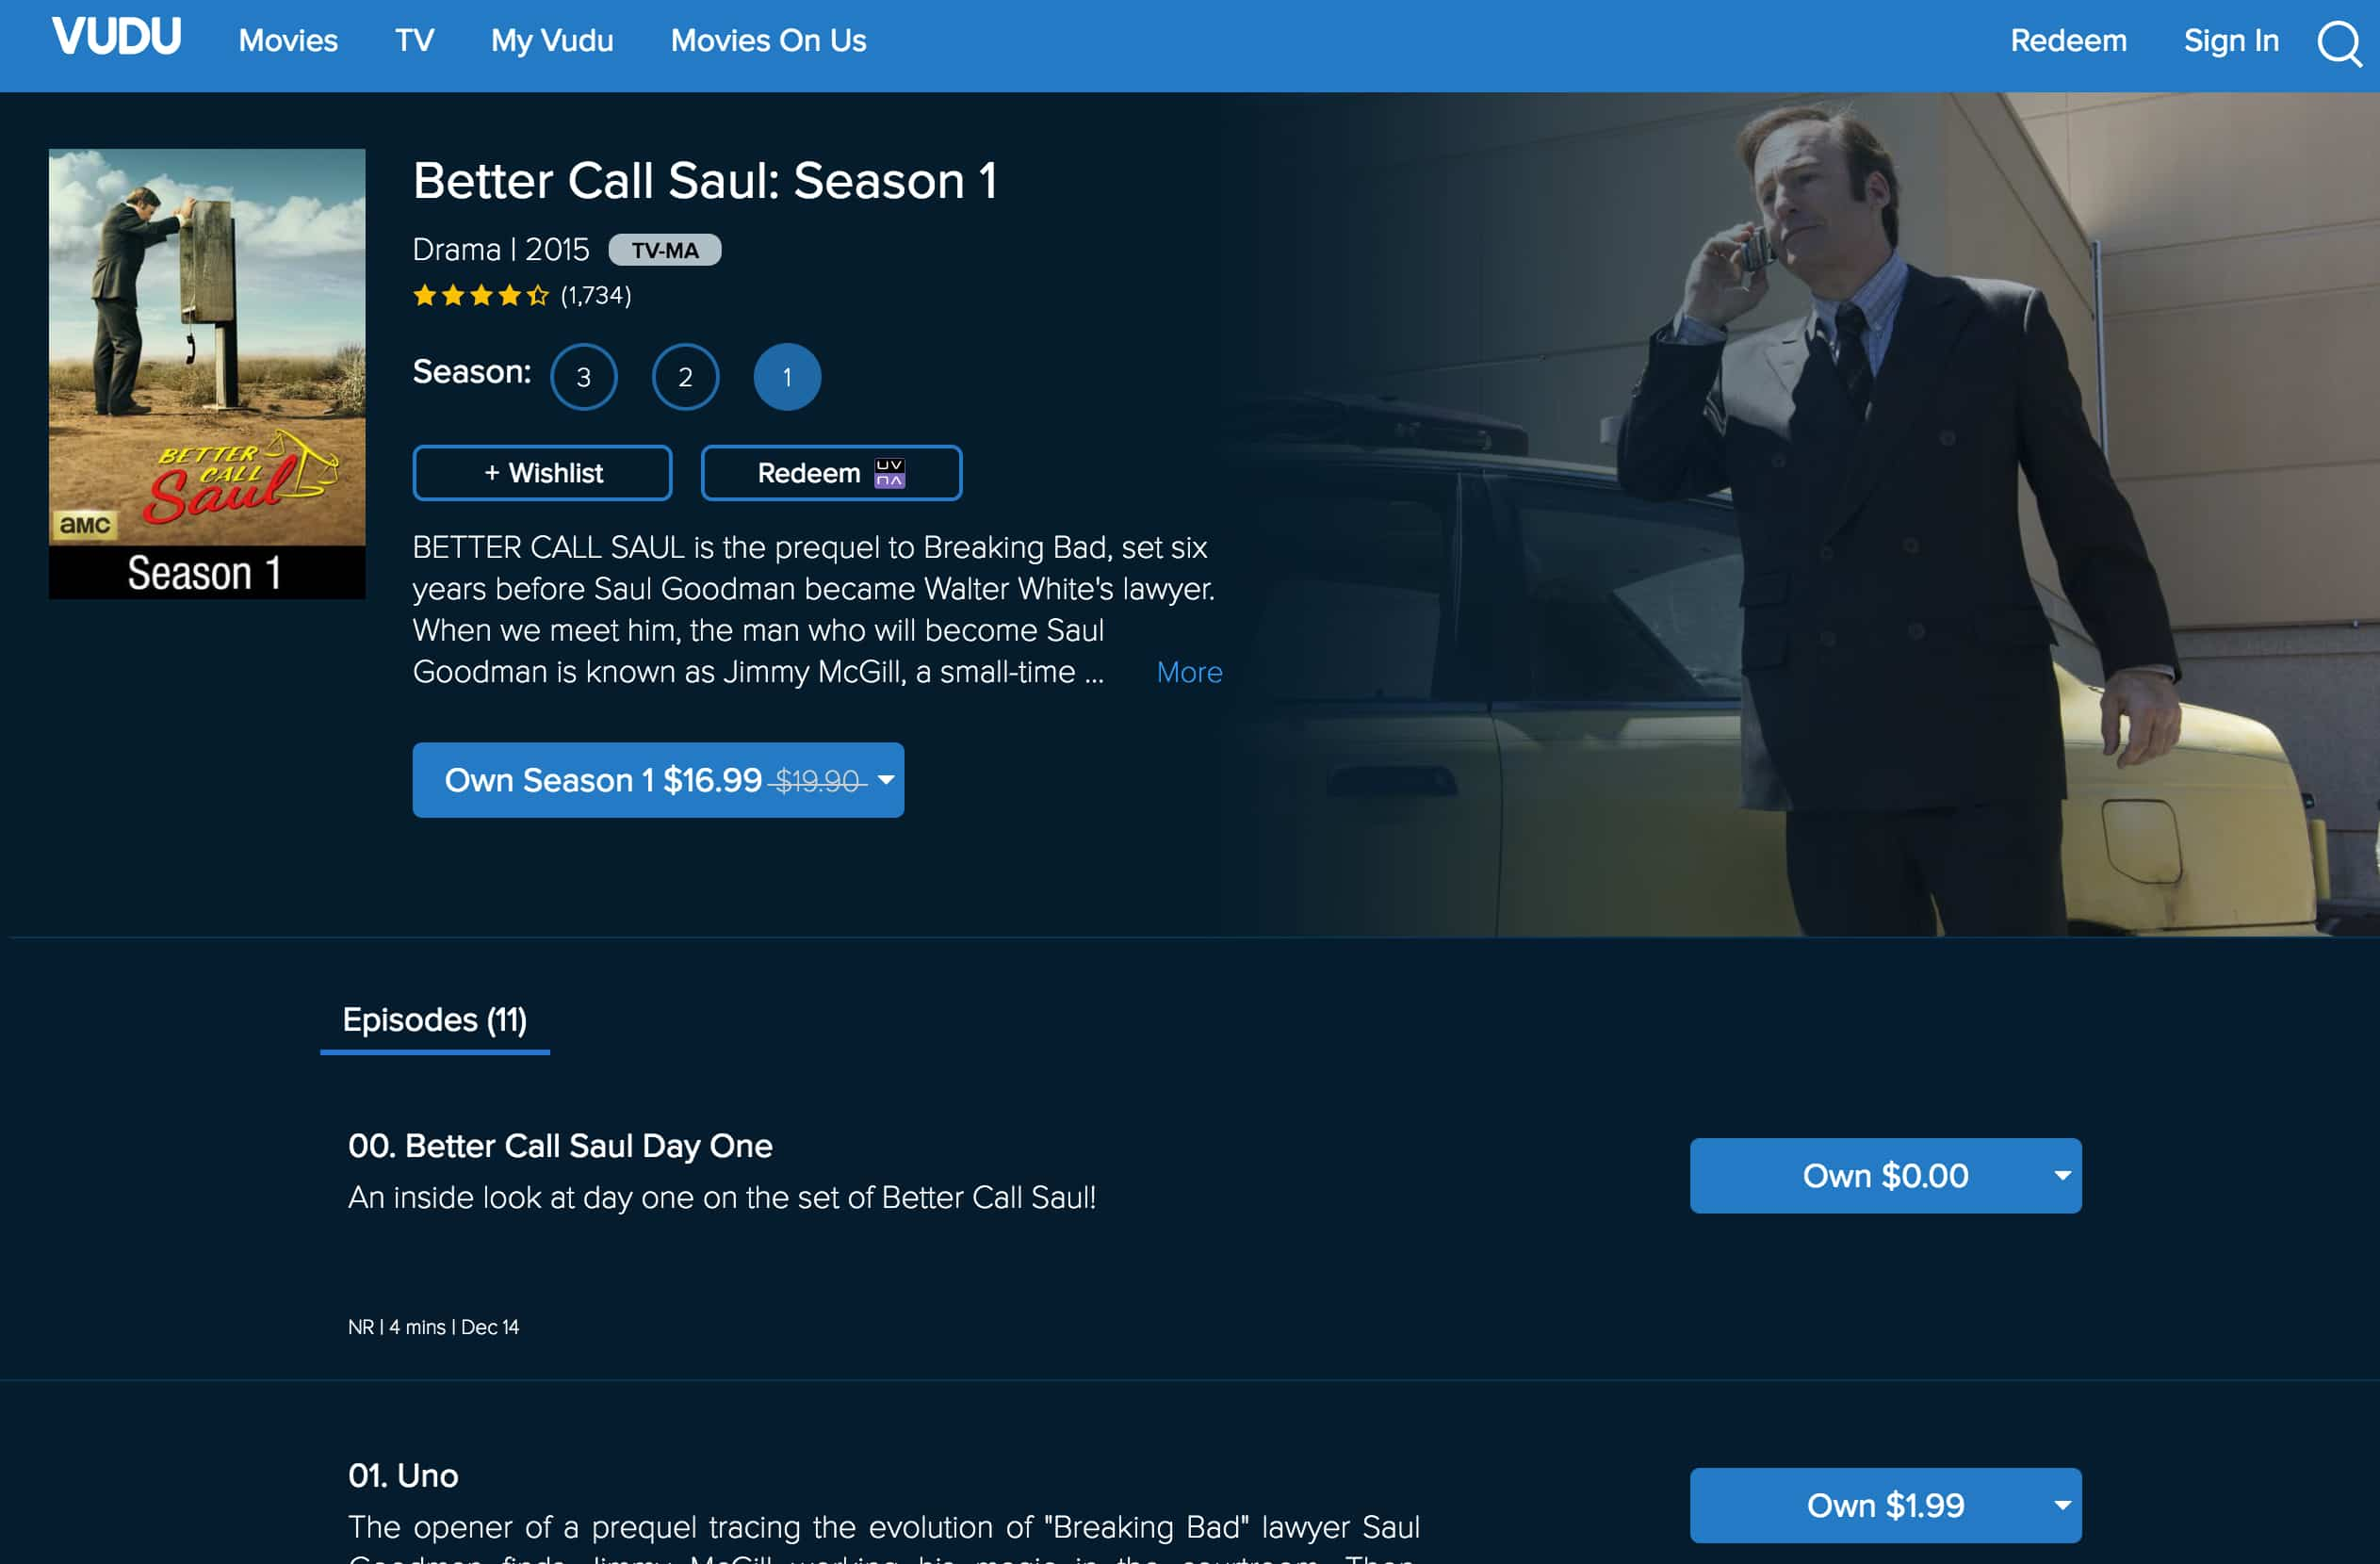 Better Call Saul Vudu Season 1